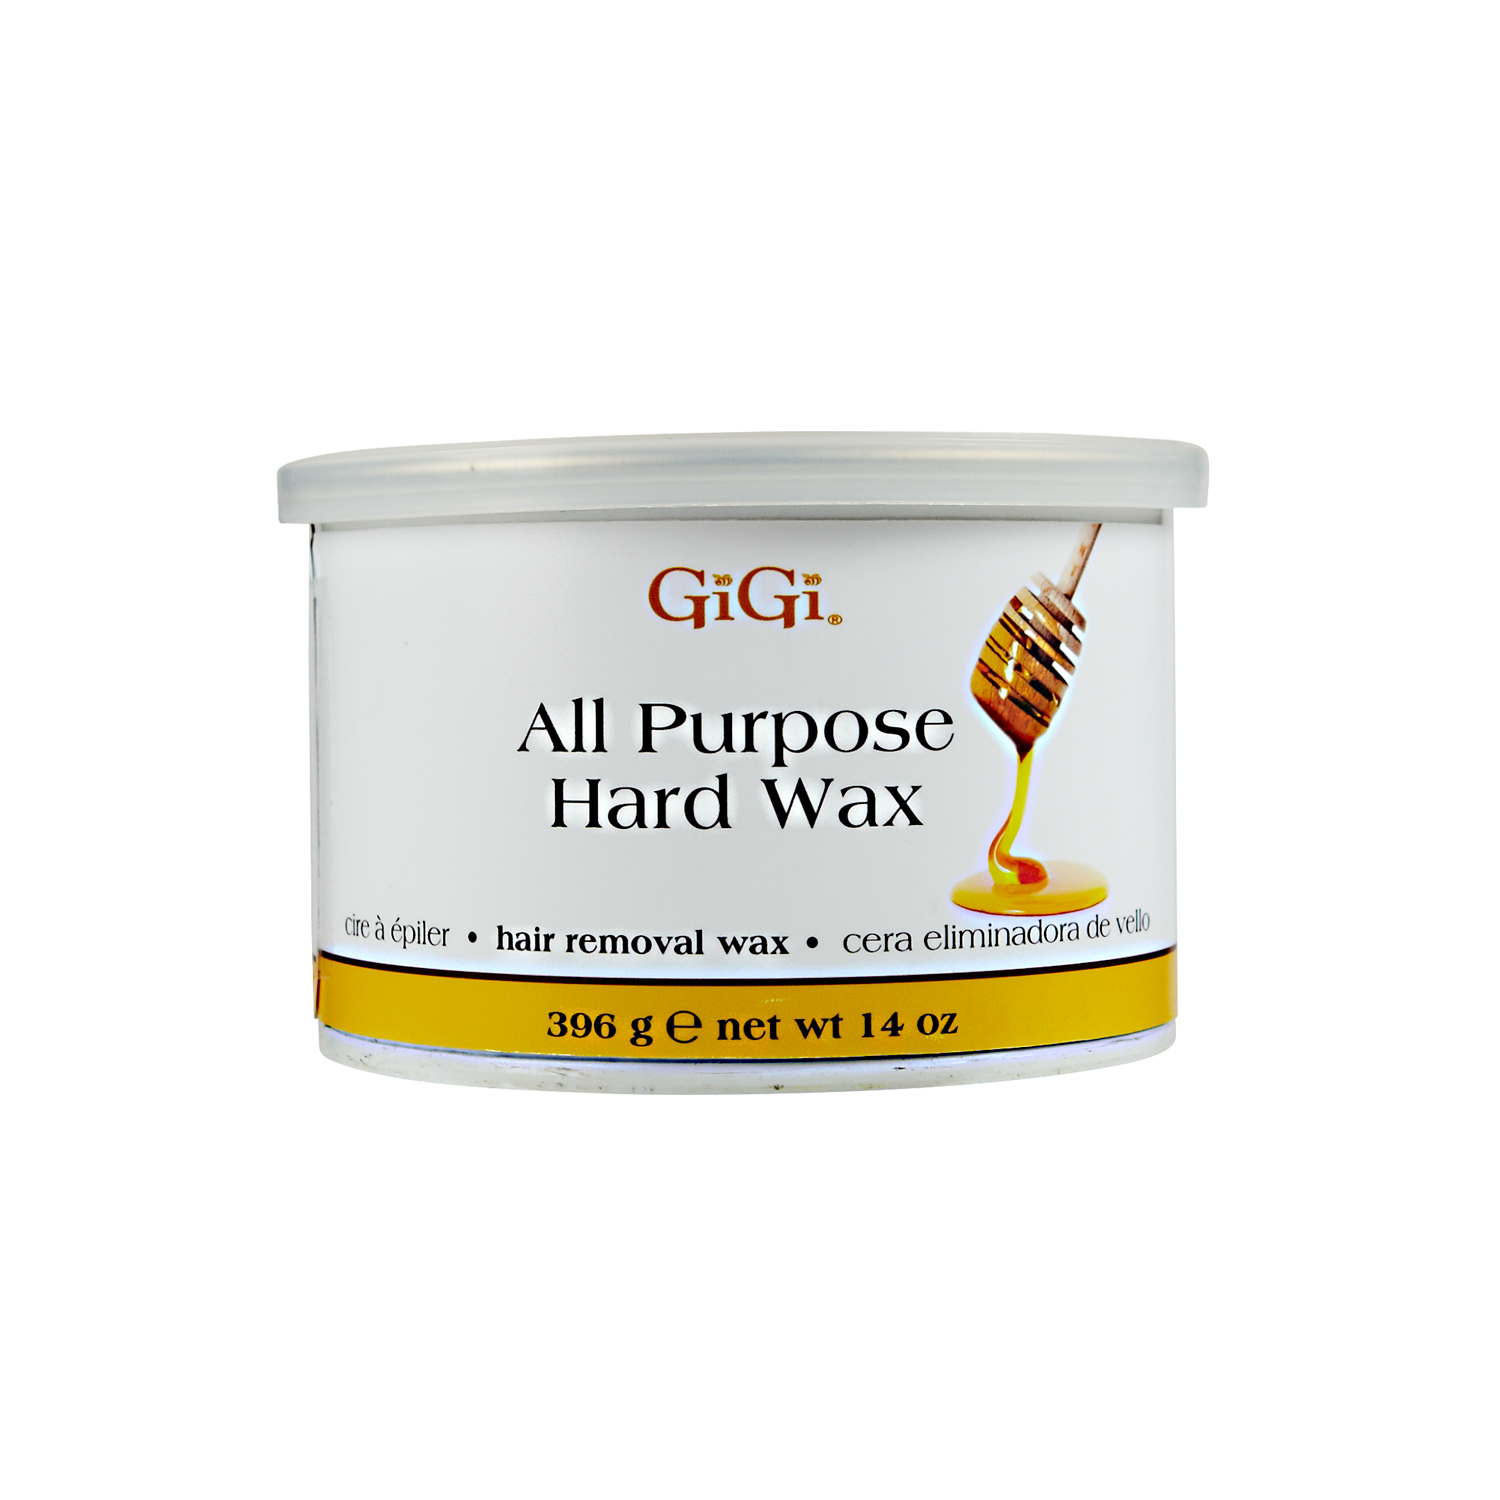 Sally Beauty coupon: All Purpose Hard Wax